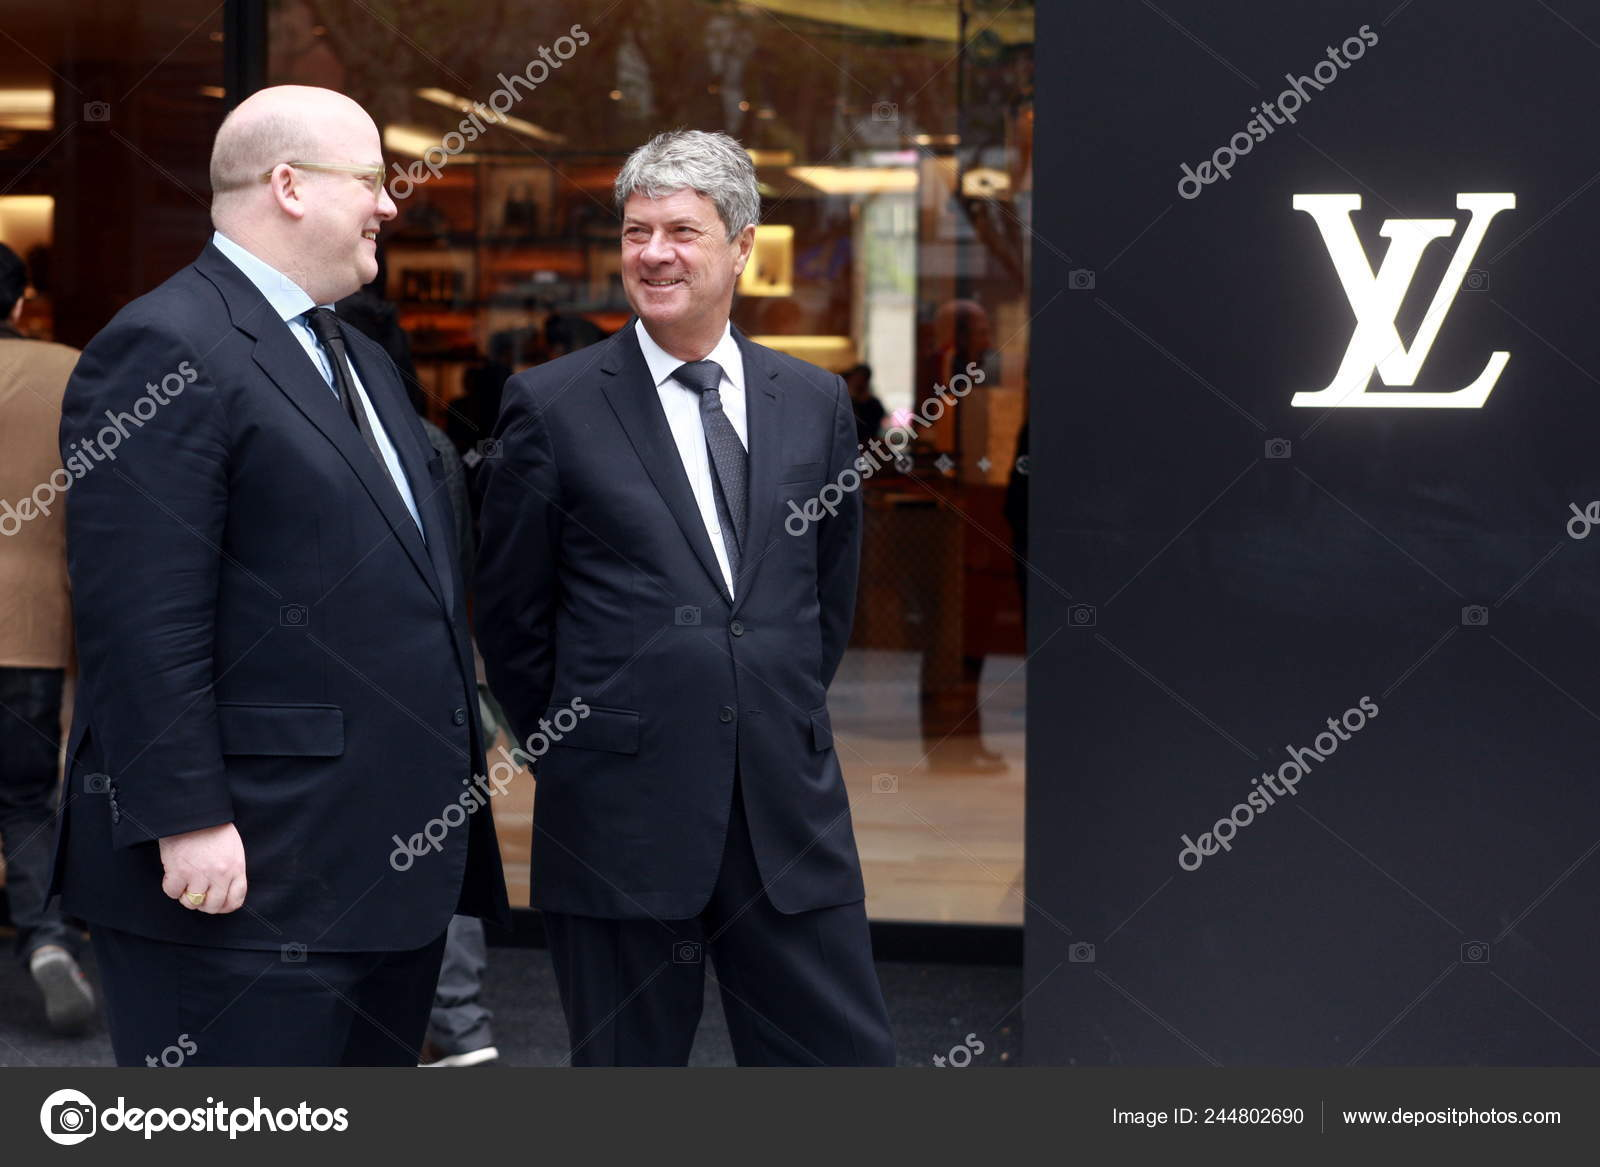 caca97380db Yves Carcelle Right Chairman Ceo Louis Vuitton Talks Christopher ...